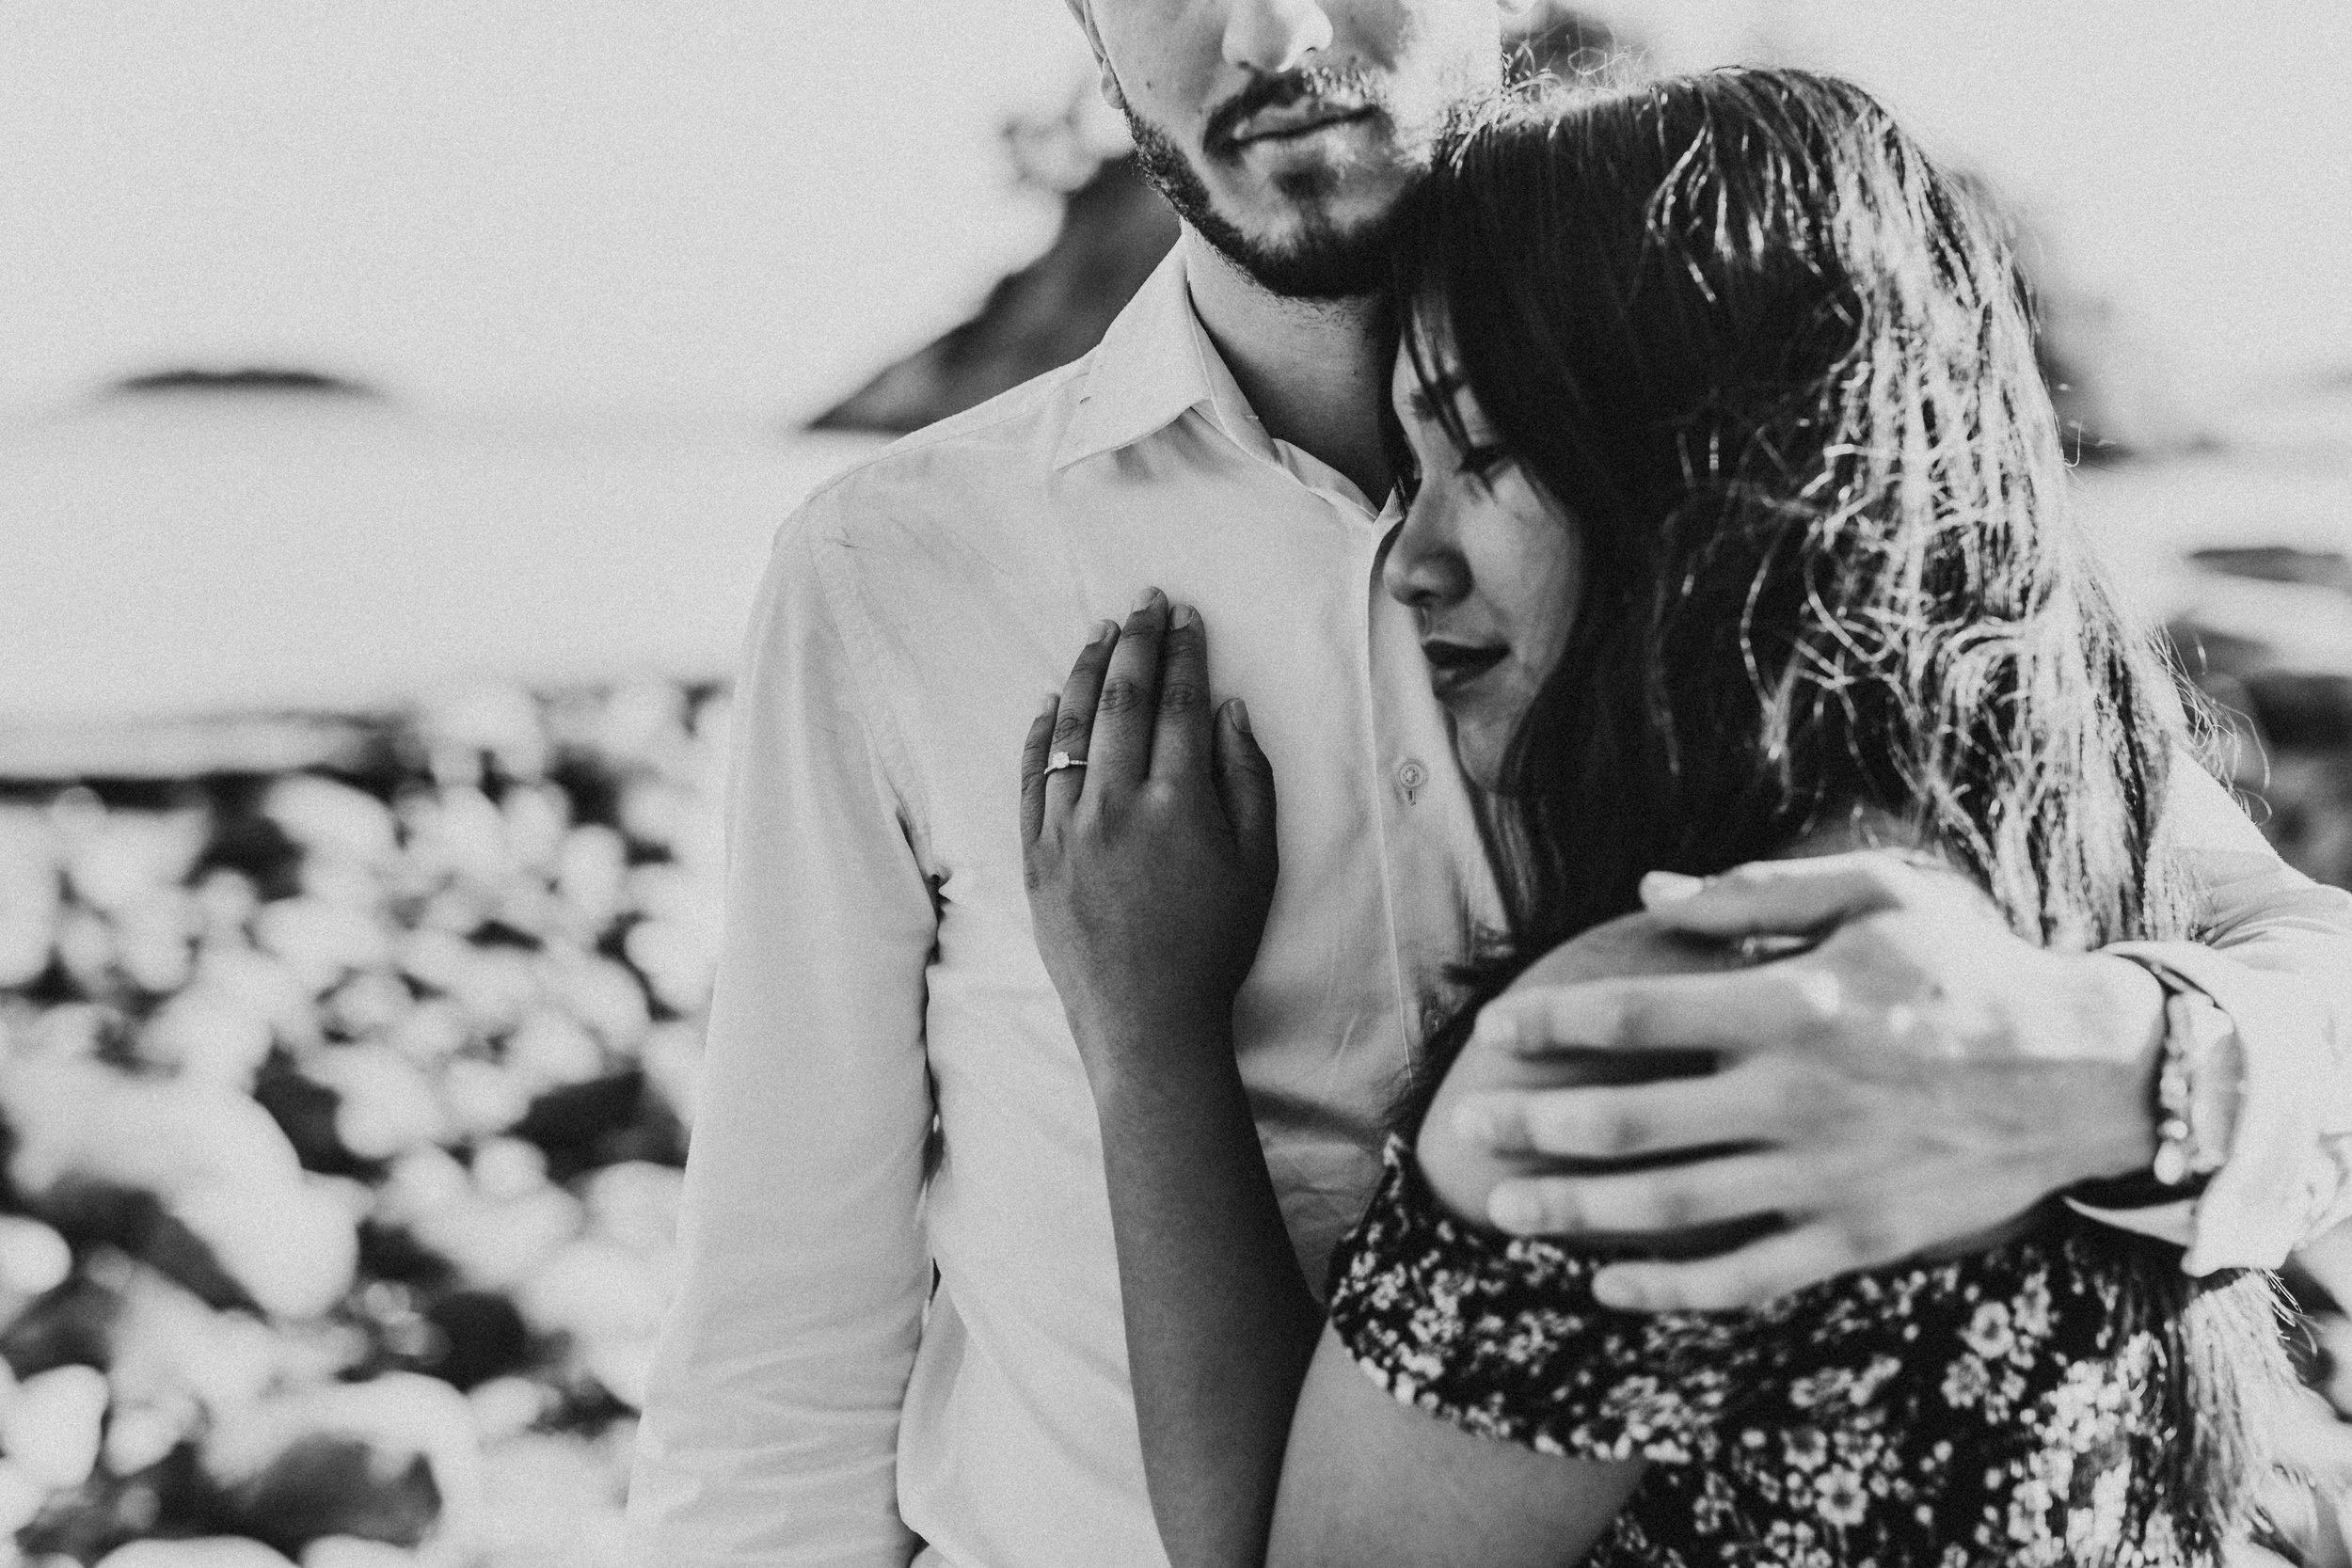 oliver-rabanes-vancouver-surrey-whytecliff-park-proposal-engagement-photography-28.JPG